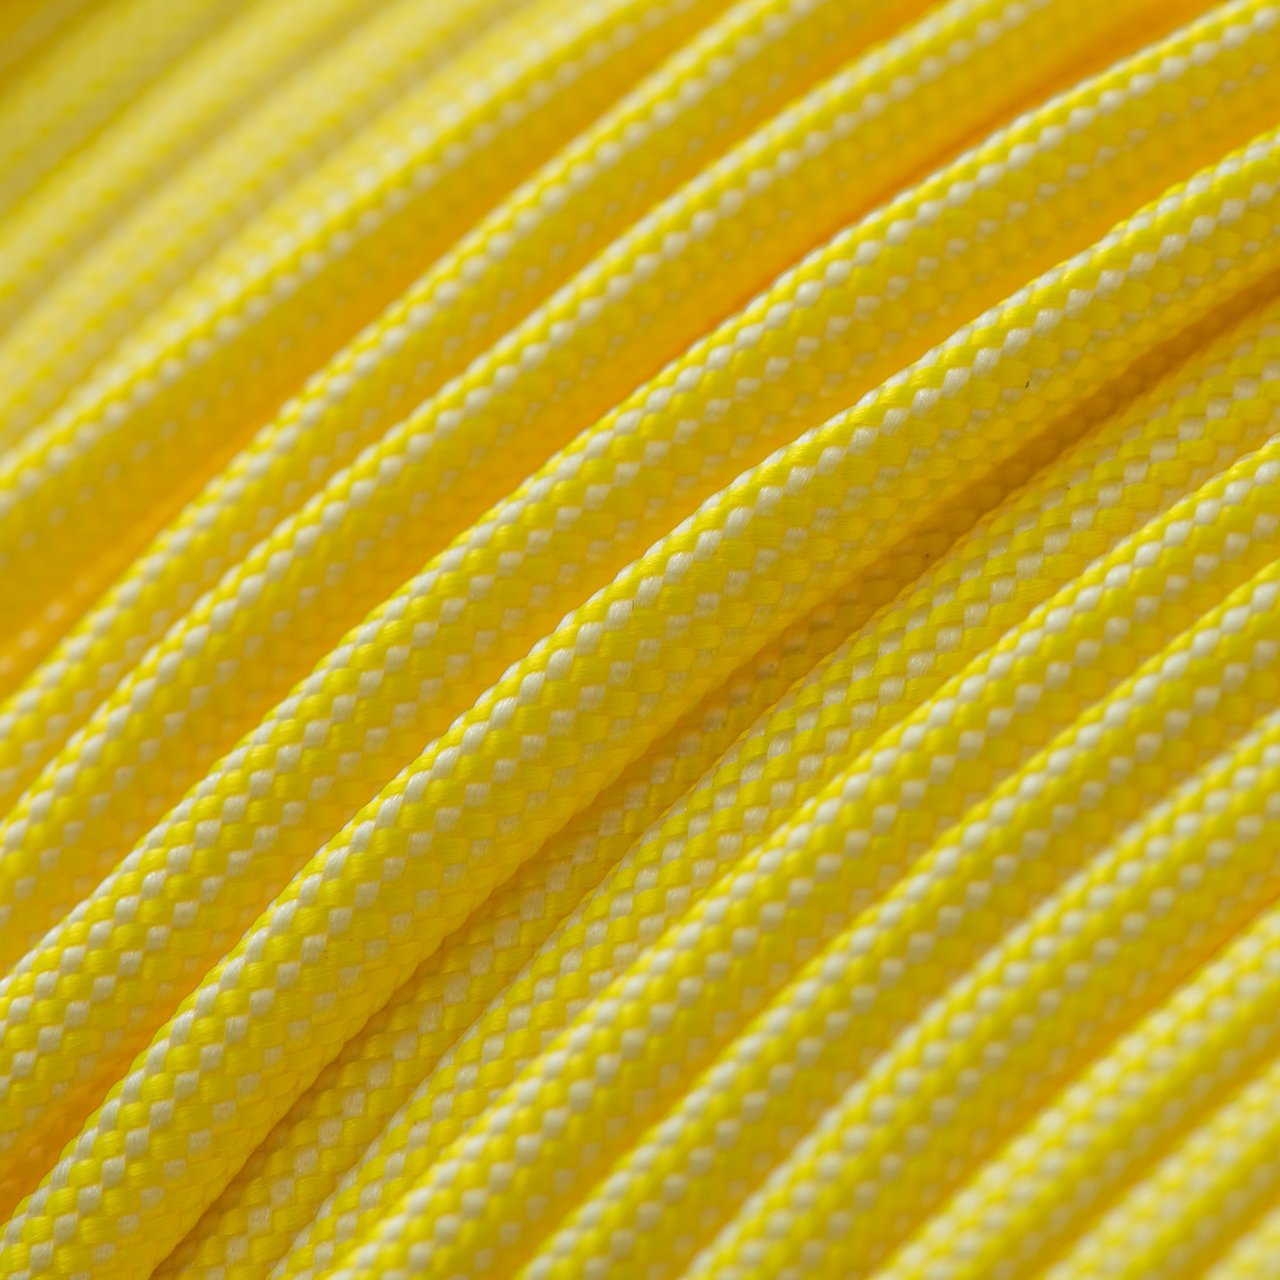 Canary Yellow & White Stripes Paracord Type III